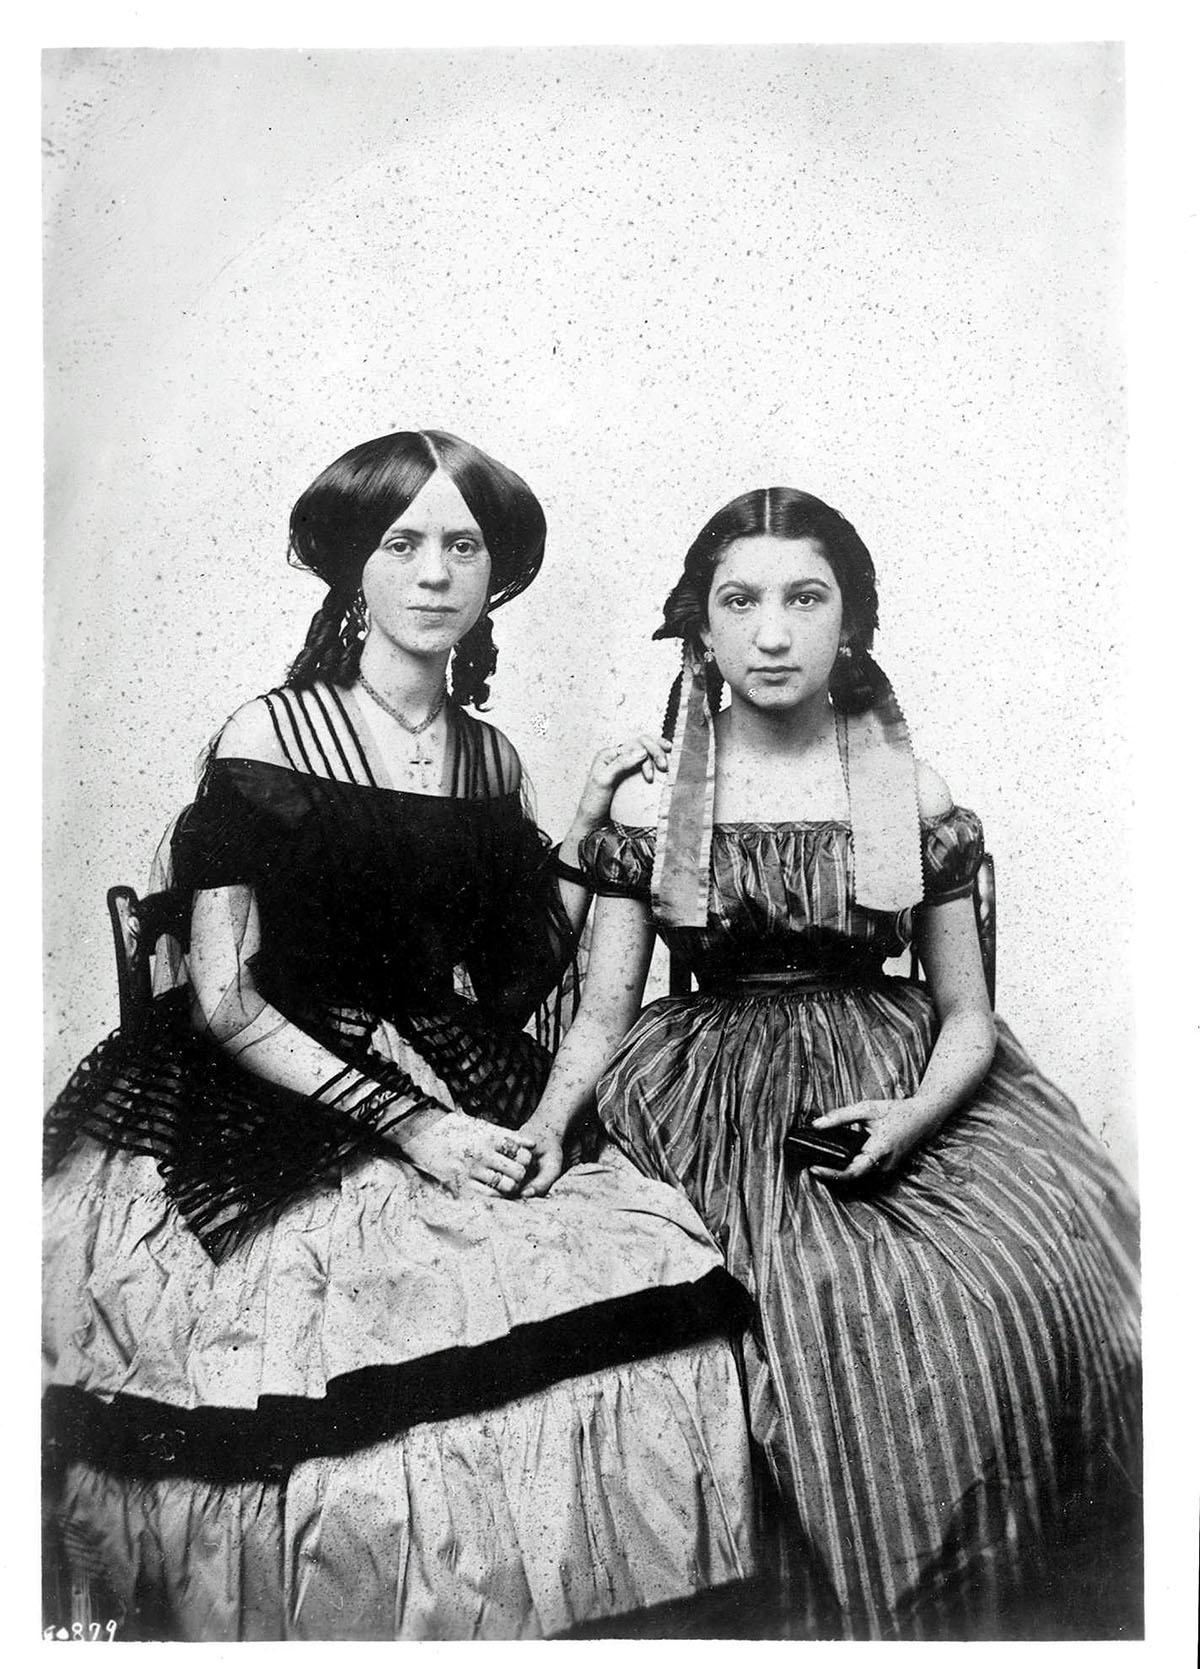 Maria de Jesus Wilson and Medora Hereford